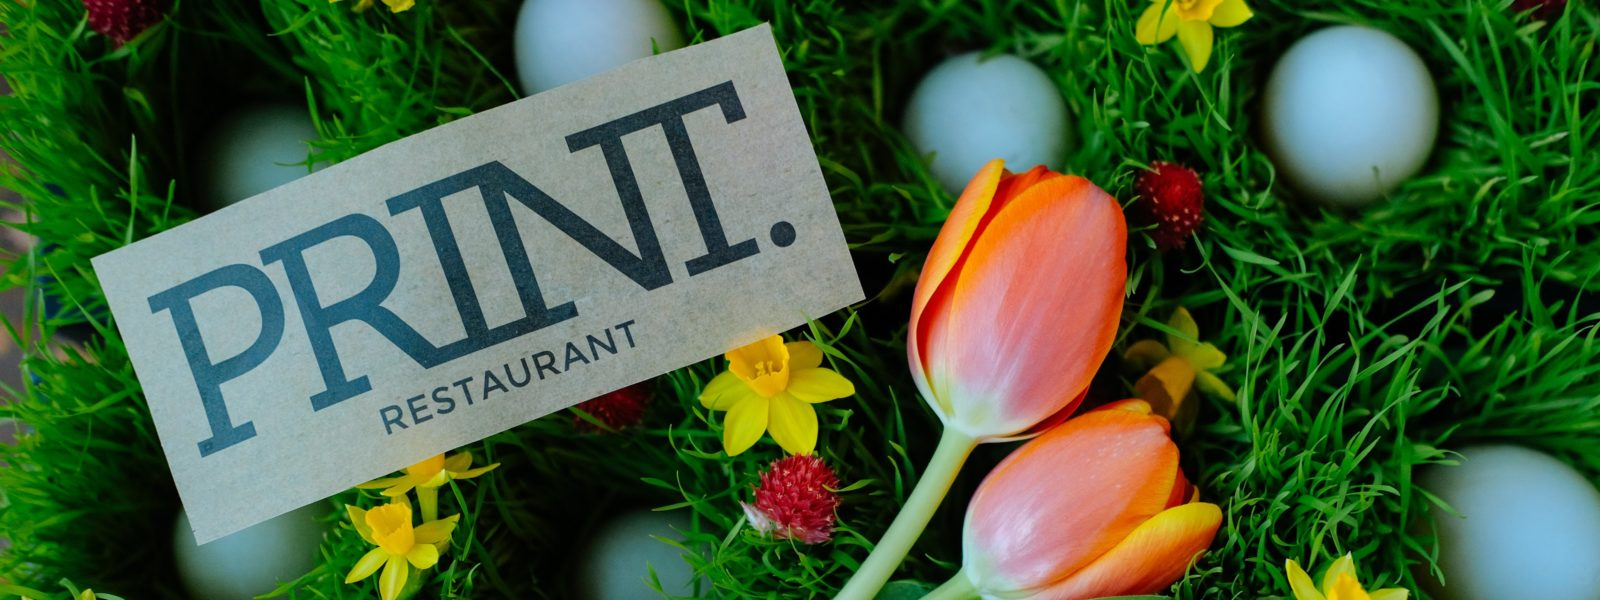 PRINT logo on paper with tulips and blue eggs.